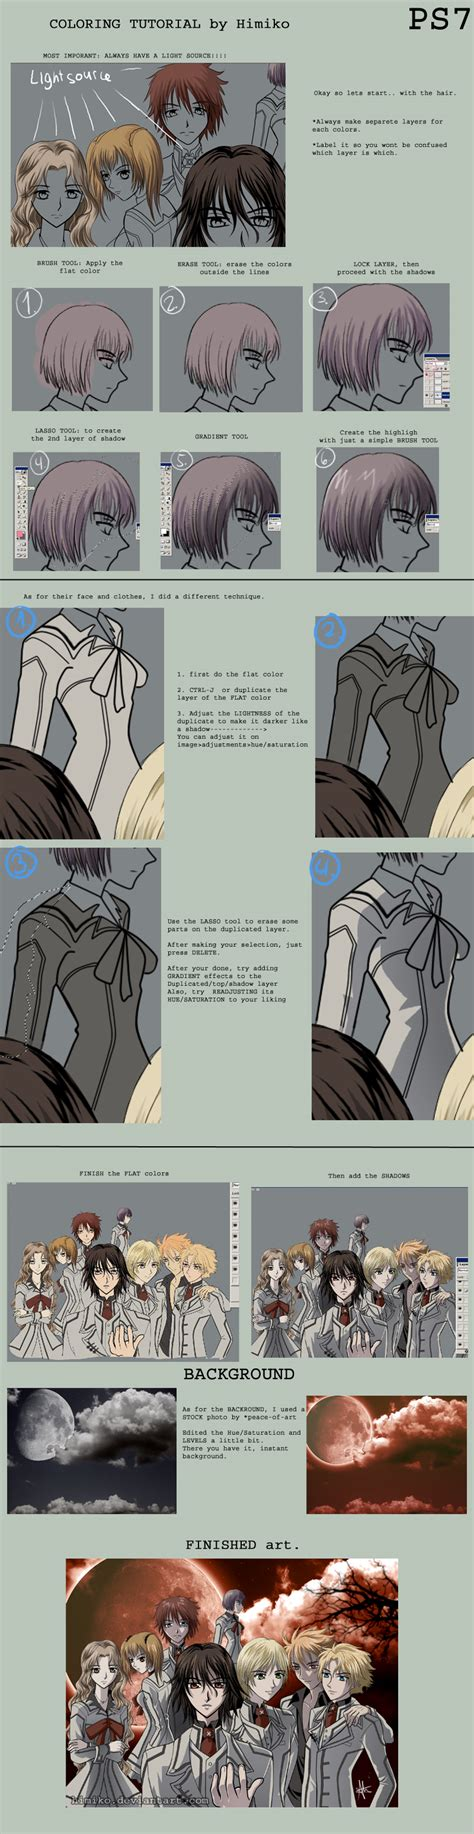 photoshop coloring tutorial coloring tutorial photoshop by himiko on deviantart